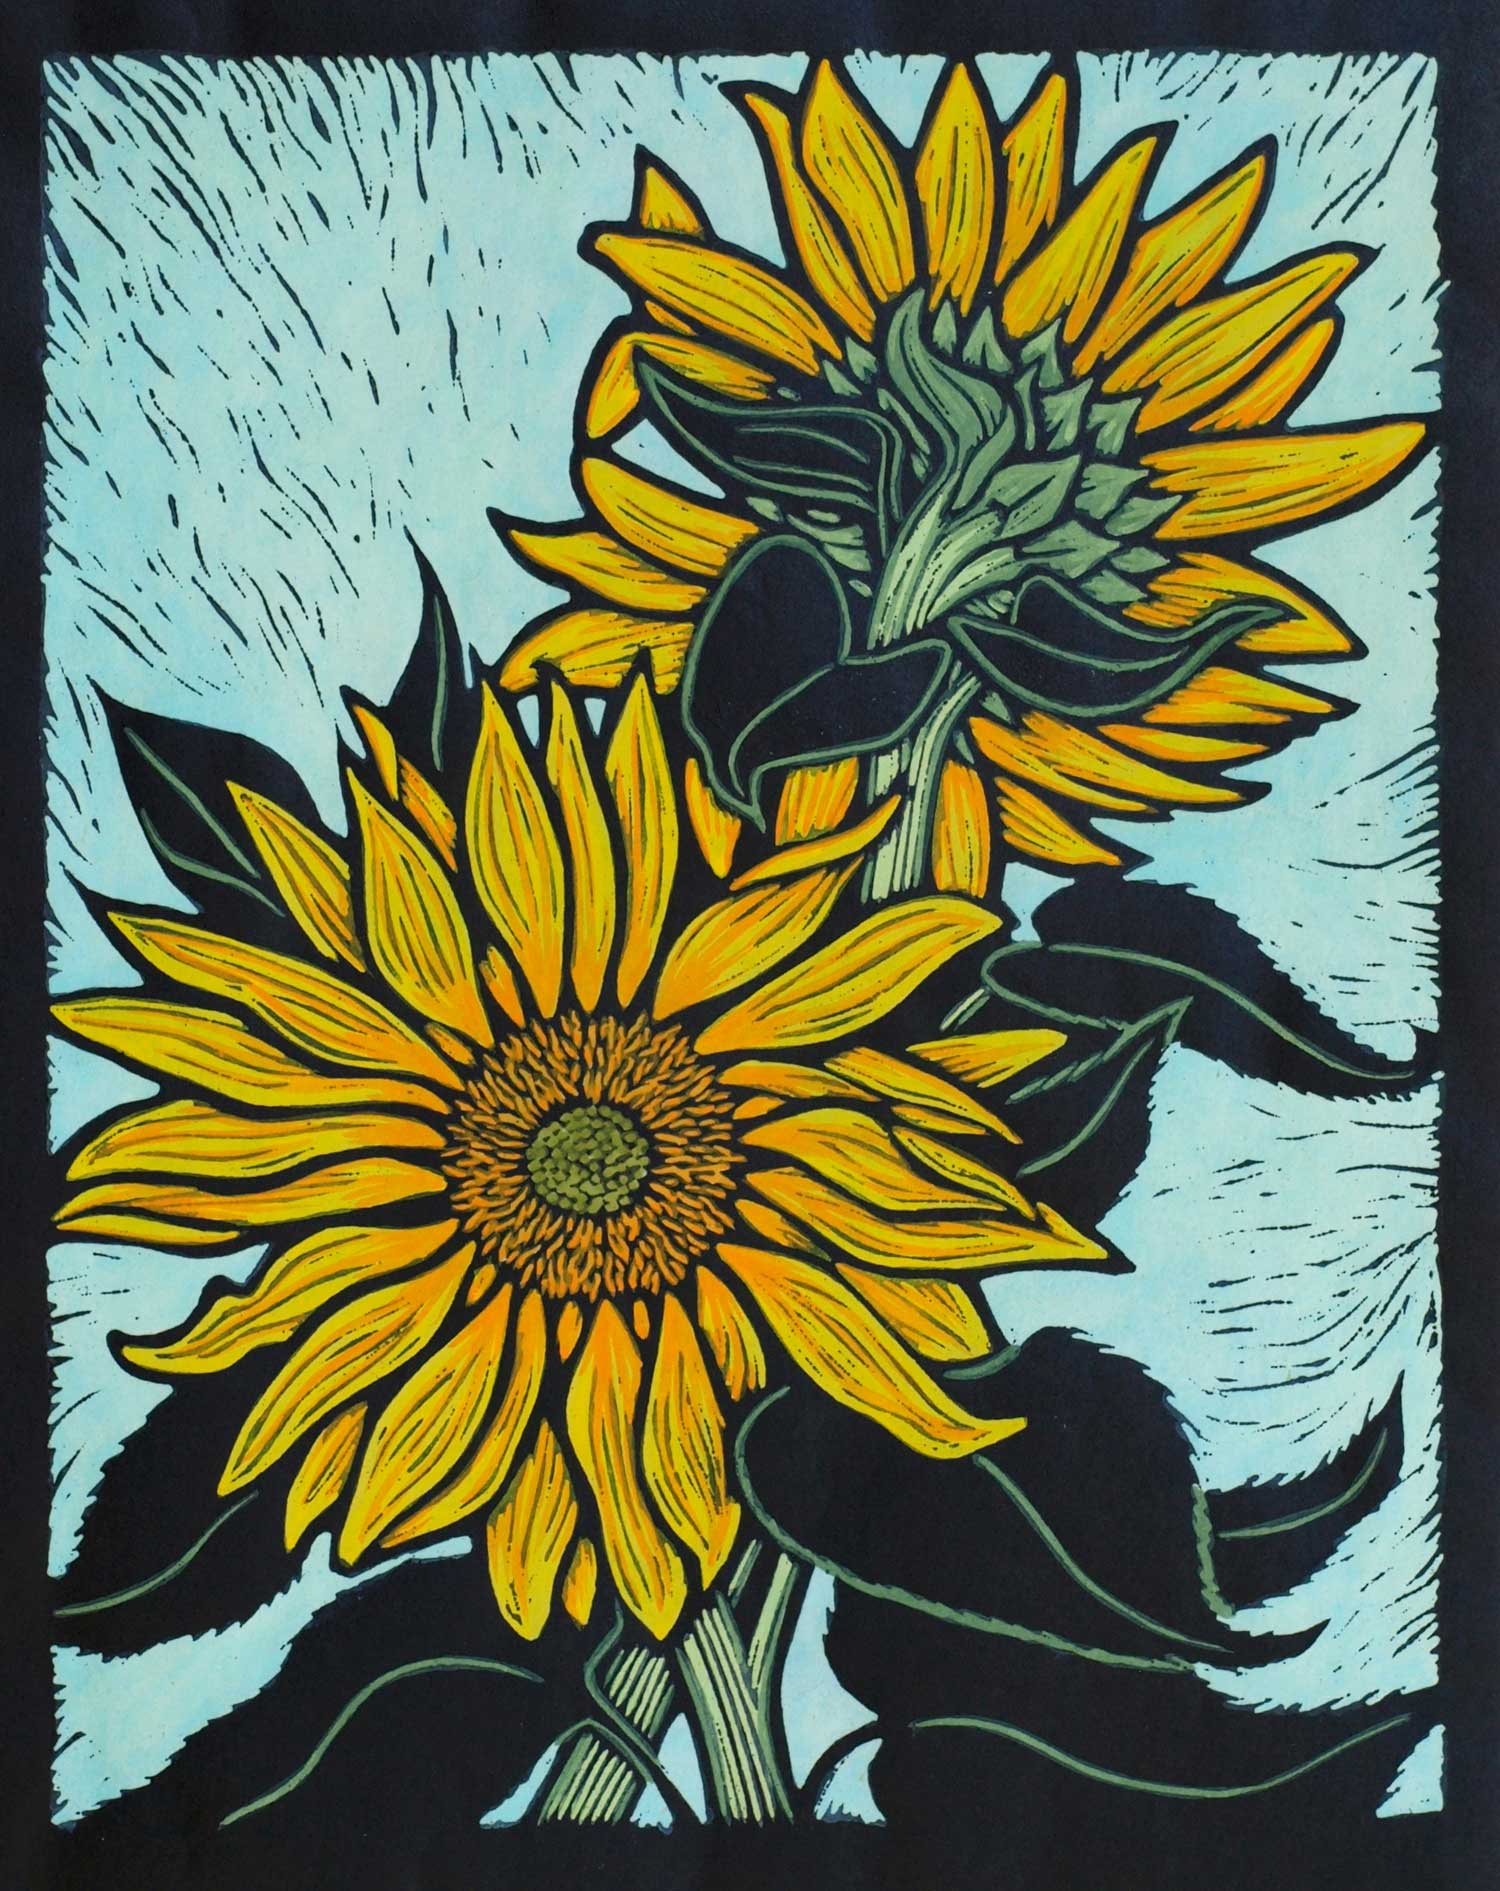 SUNFLOWER  28 X 22 CM, EDITION OF 50  HAND-cOLOURED LINOCUT ON HANDMADE JAPANESE PAPER $650